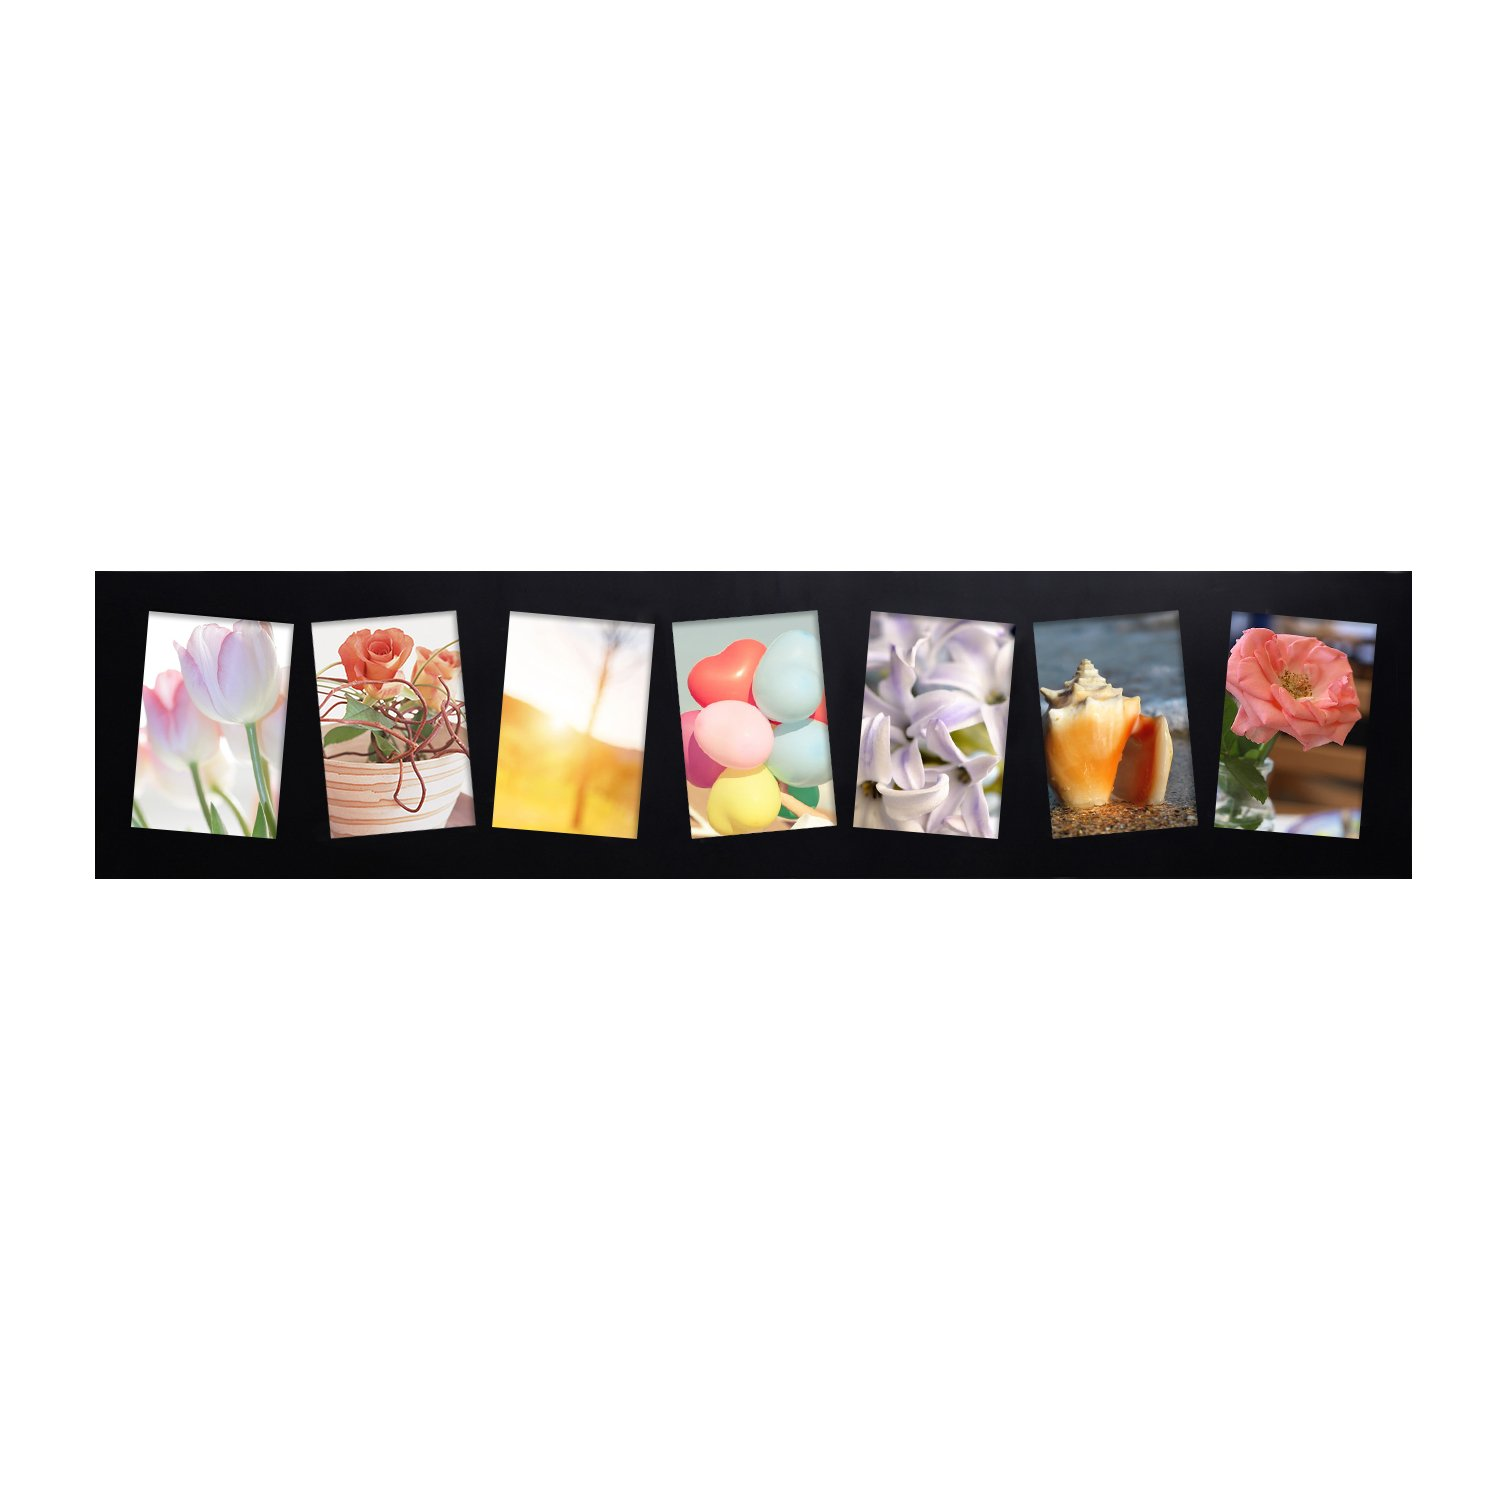 Adeco Decorative Black Wood Wall Hanging Collage Picture Photo Frame, 7 Slanted Tilted Skewed Openings, 4x6'' each